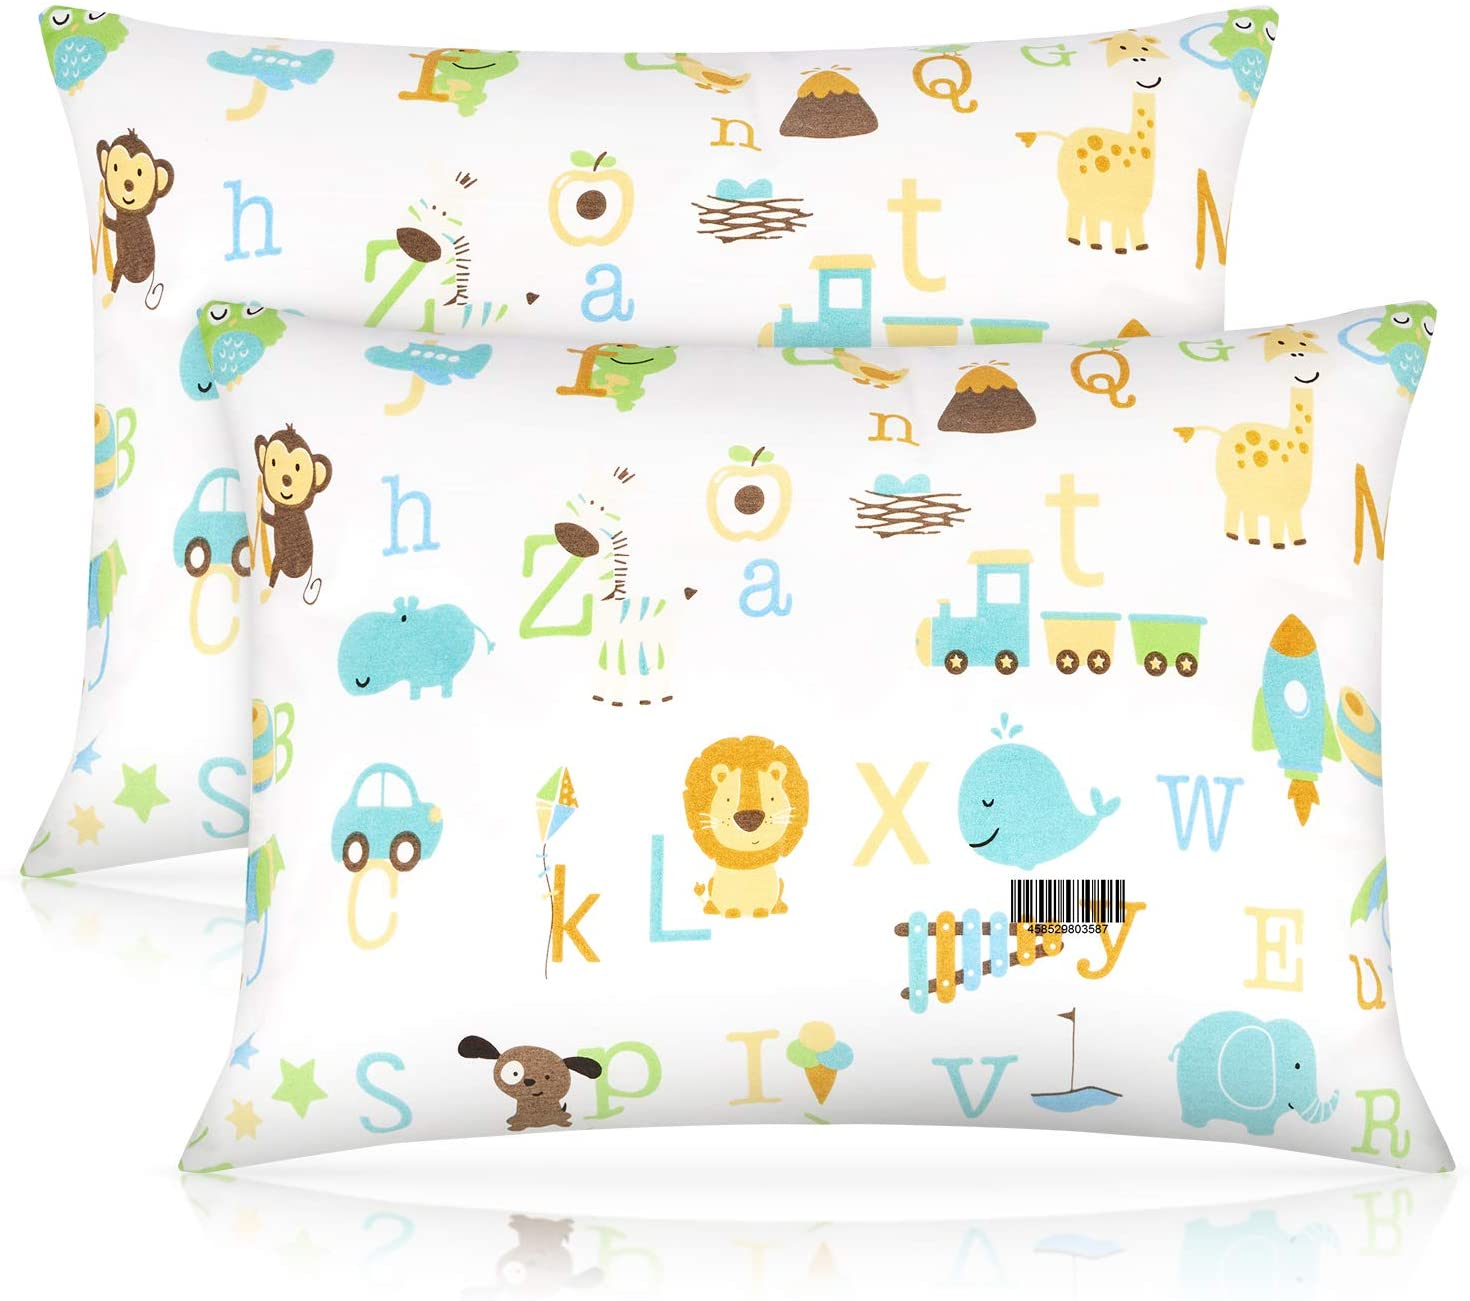 Toddler Pillow with Pillowcase Unisex 2pack